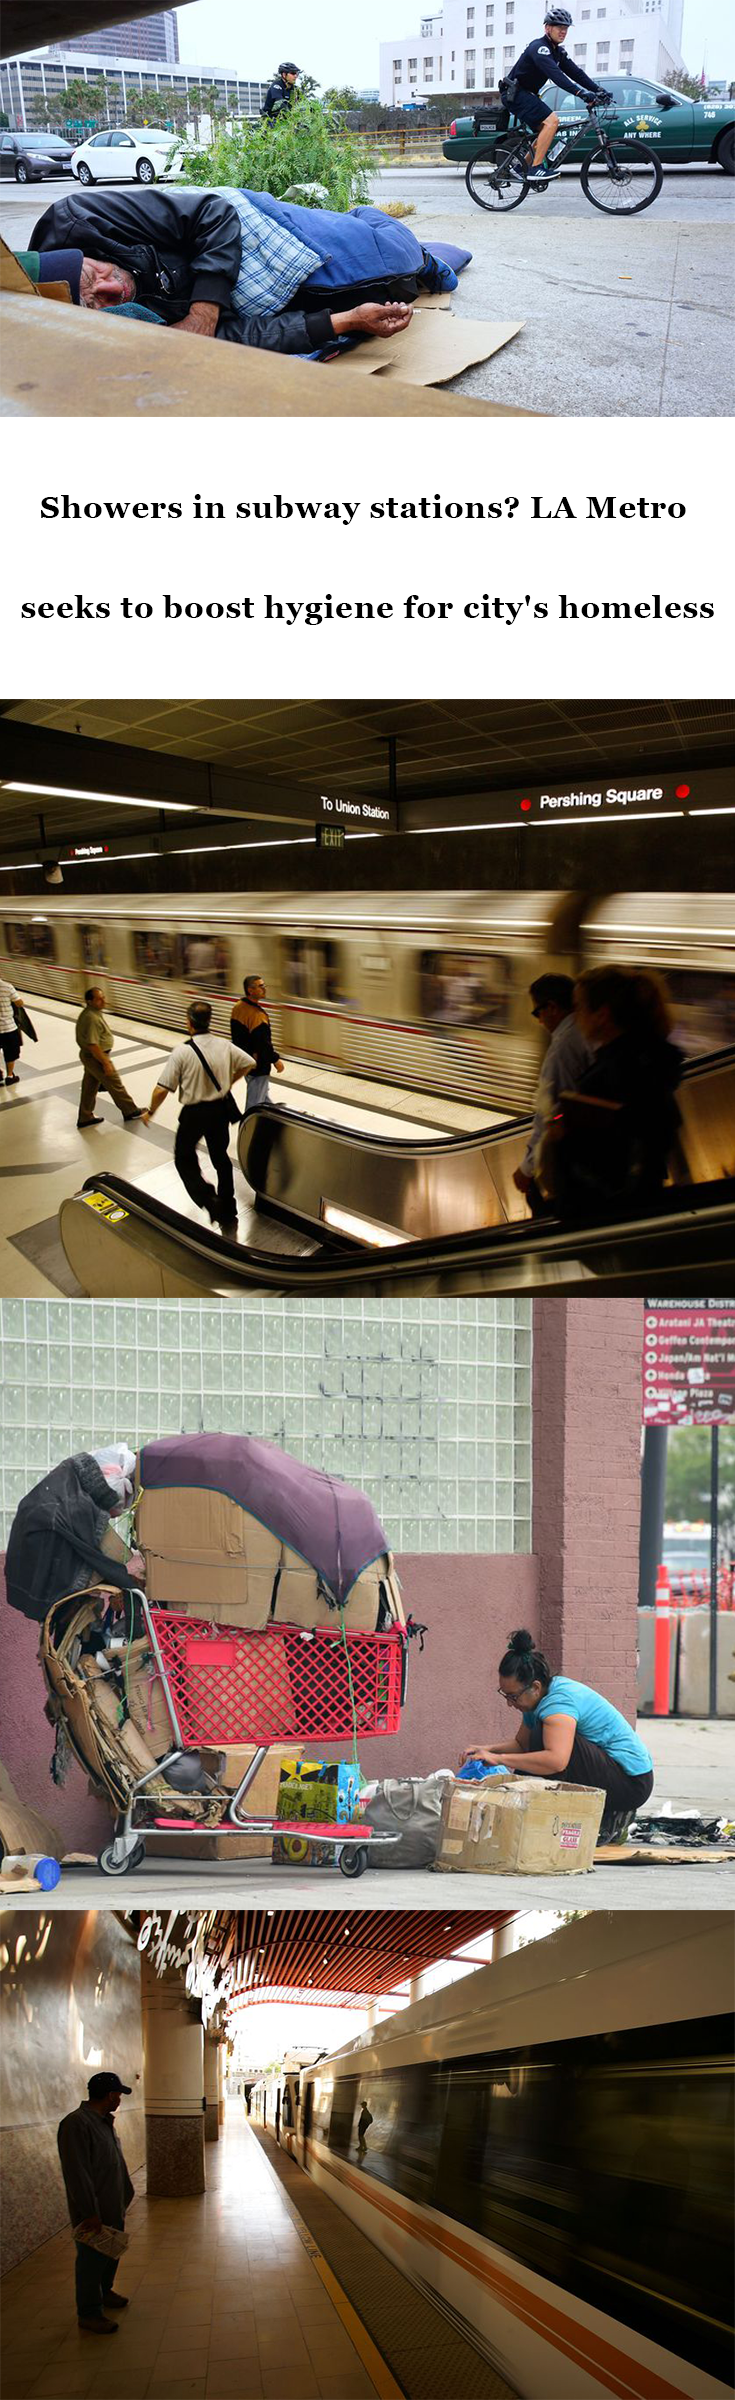 Showers In Subway Stations La Metro Seeks To Boost Hygiene For City S Homeless La Metro City Subway